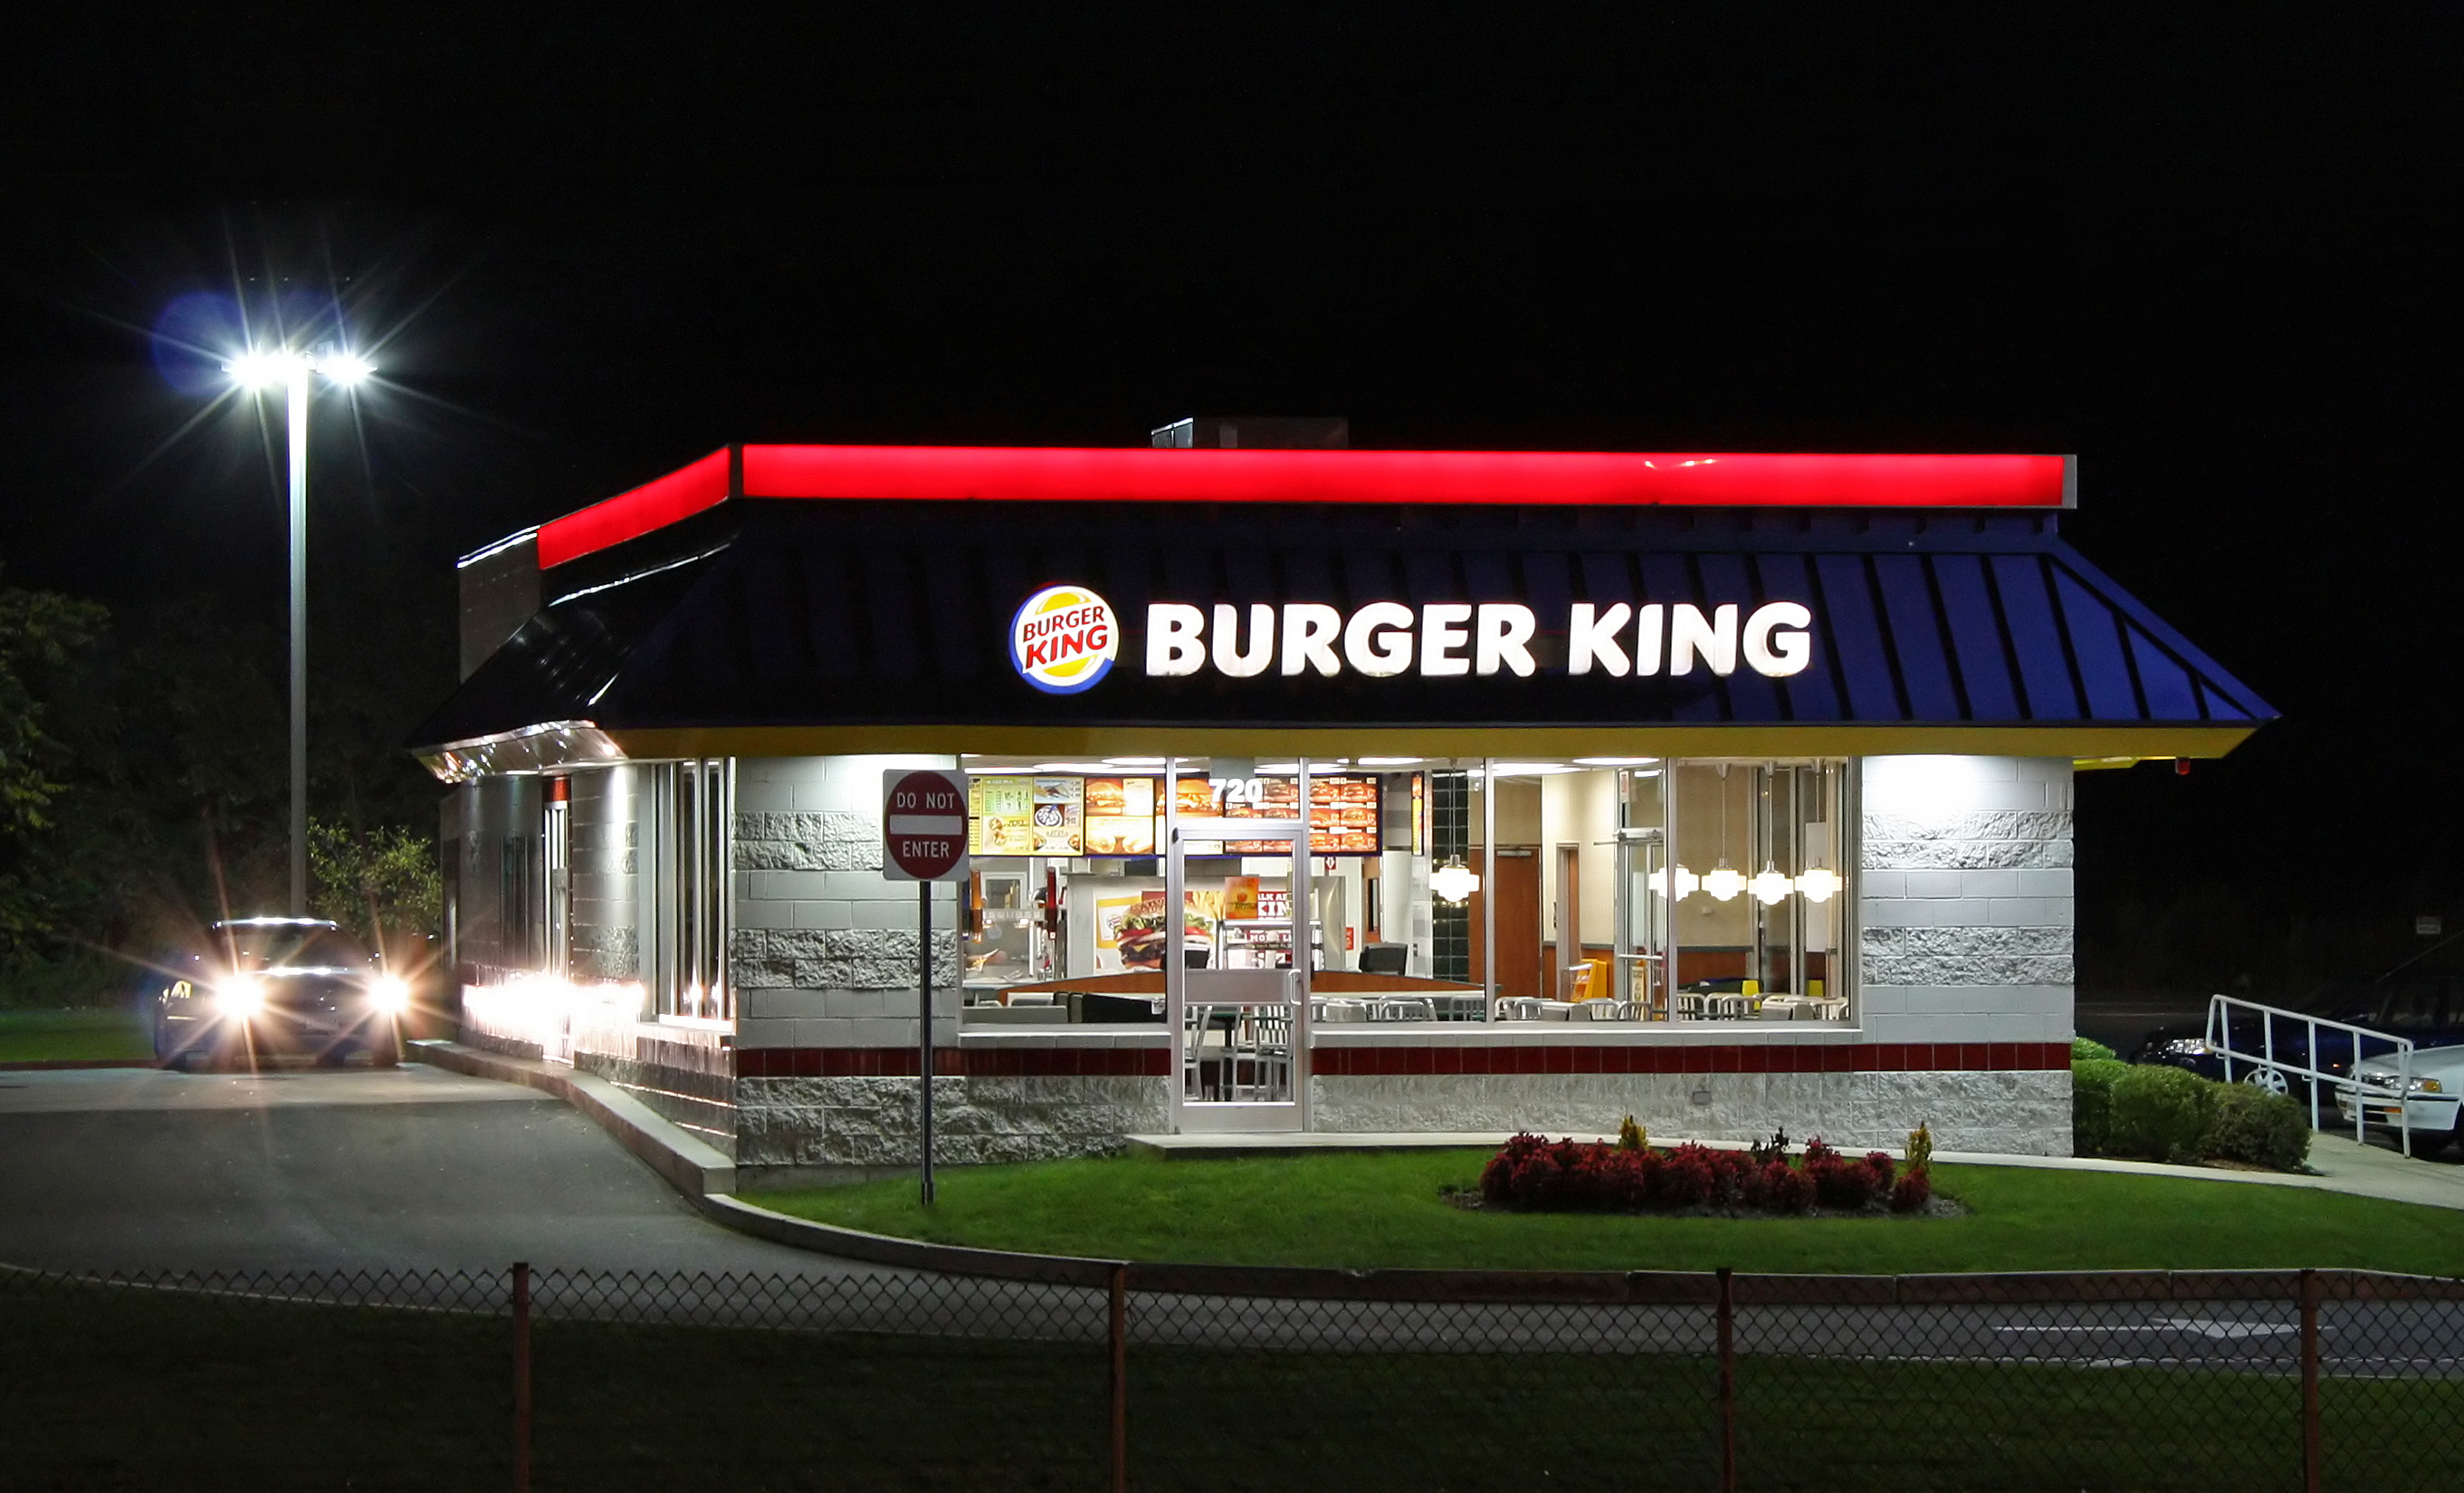 Burger King is Arriving in India this Fall